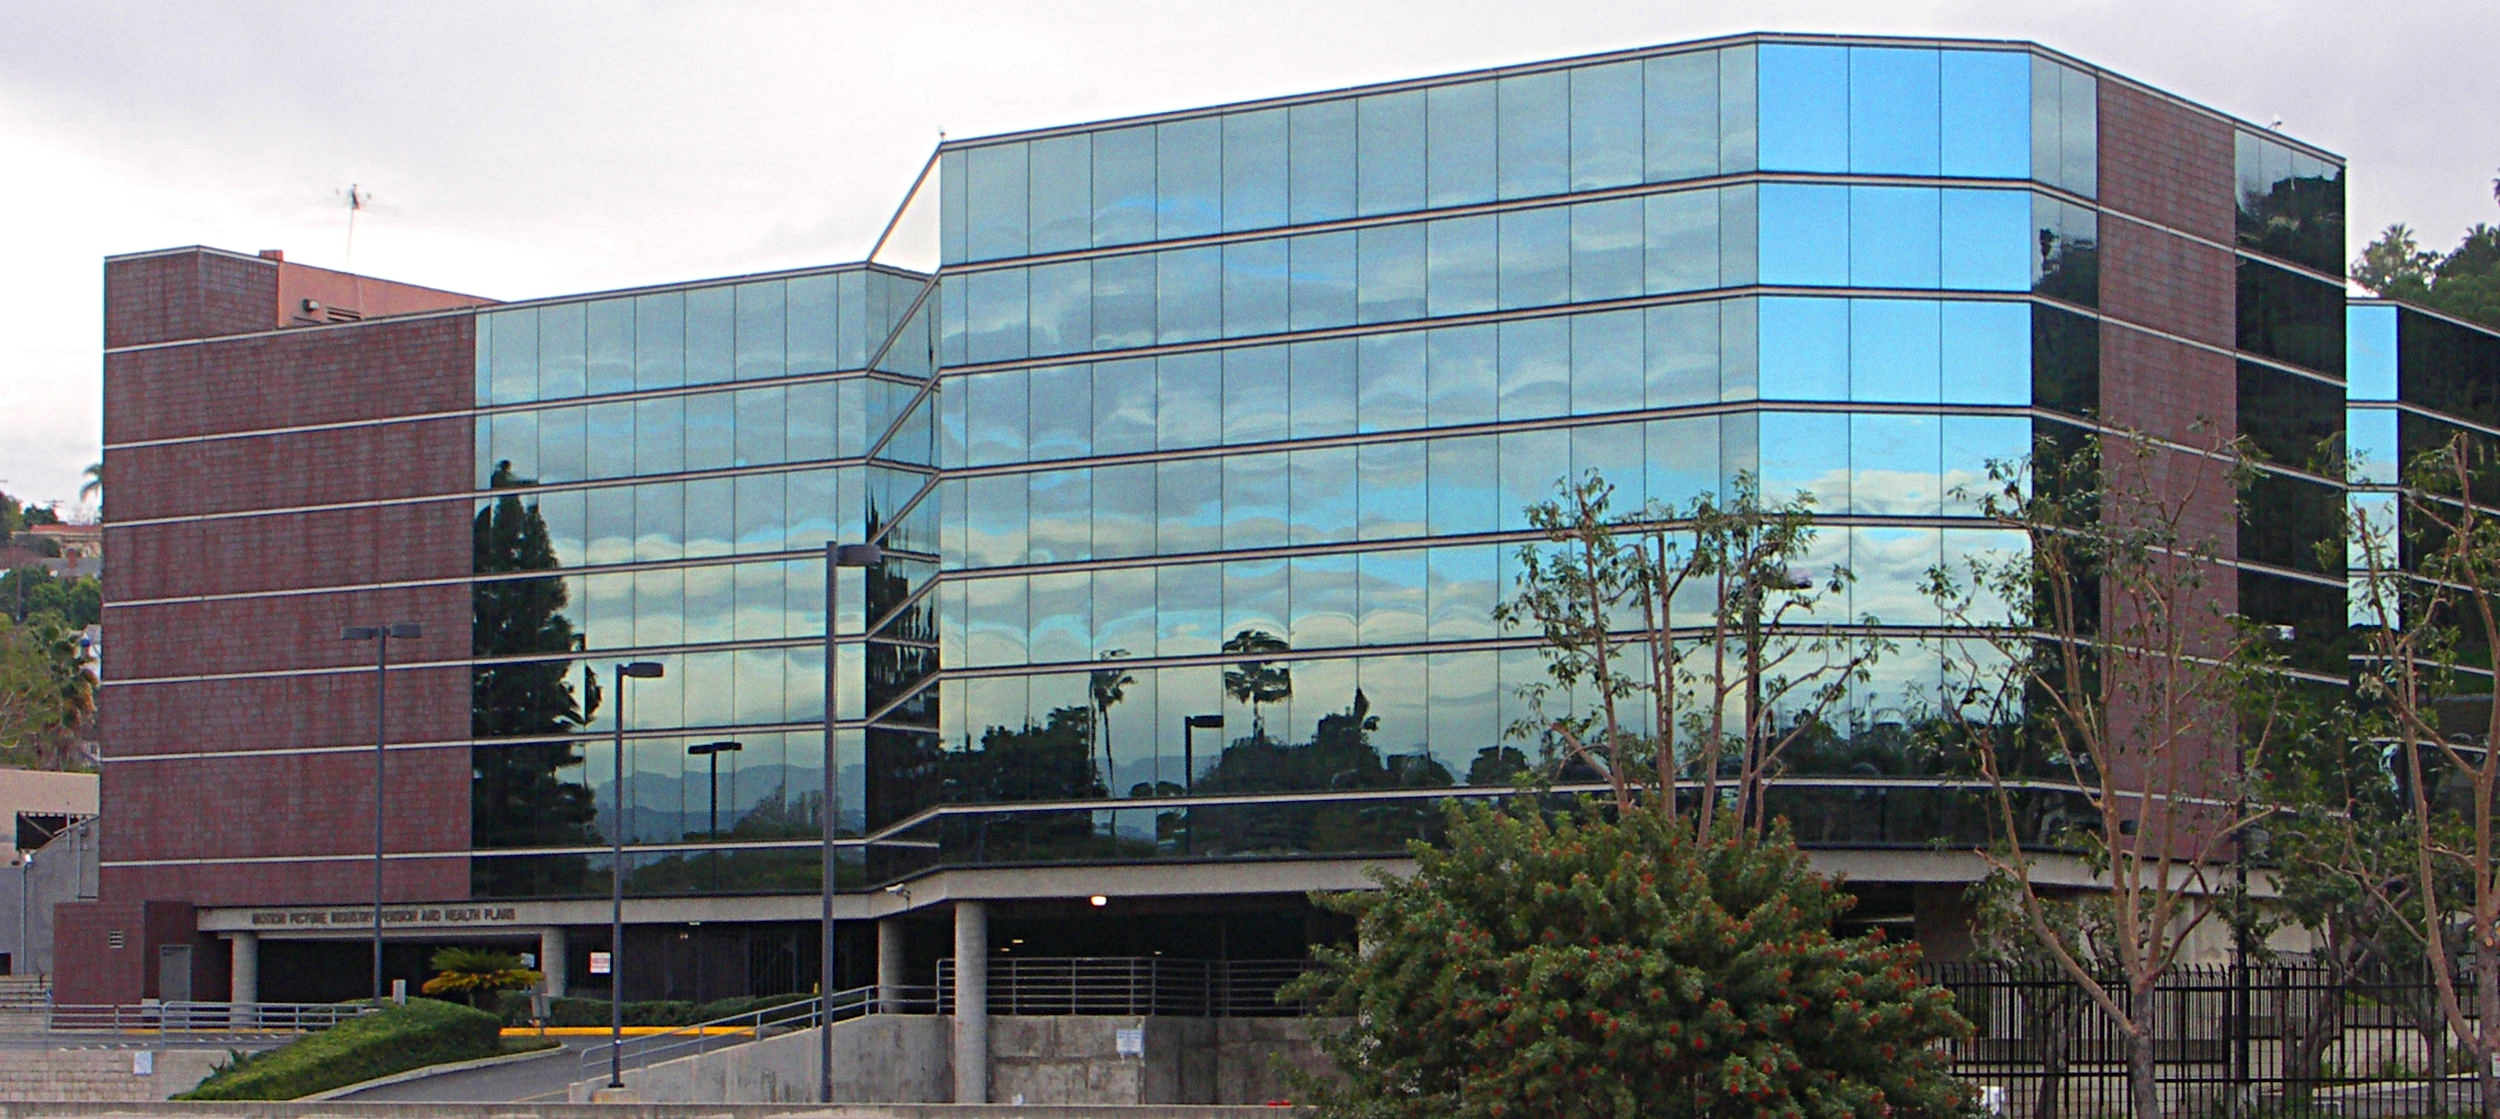 - The building's north side, which opens with the glass curtain wall system.